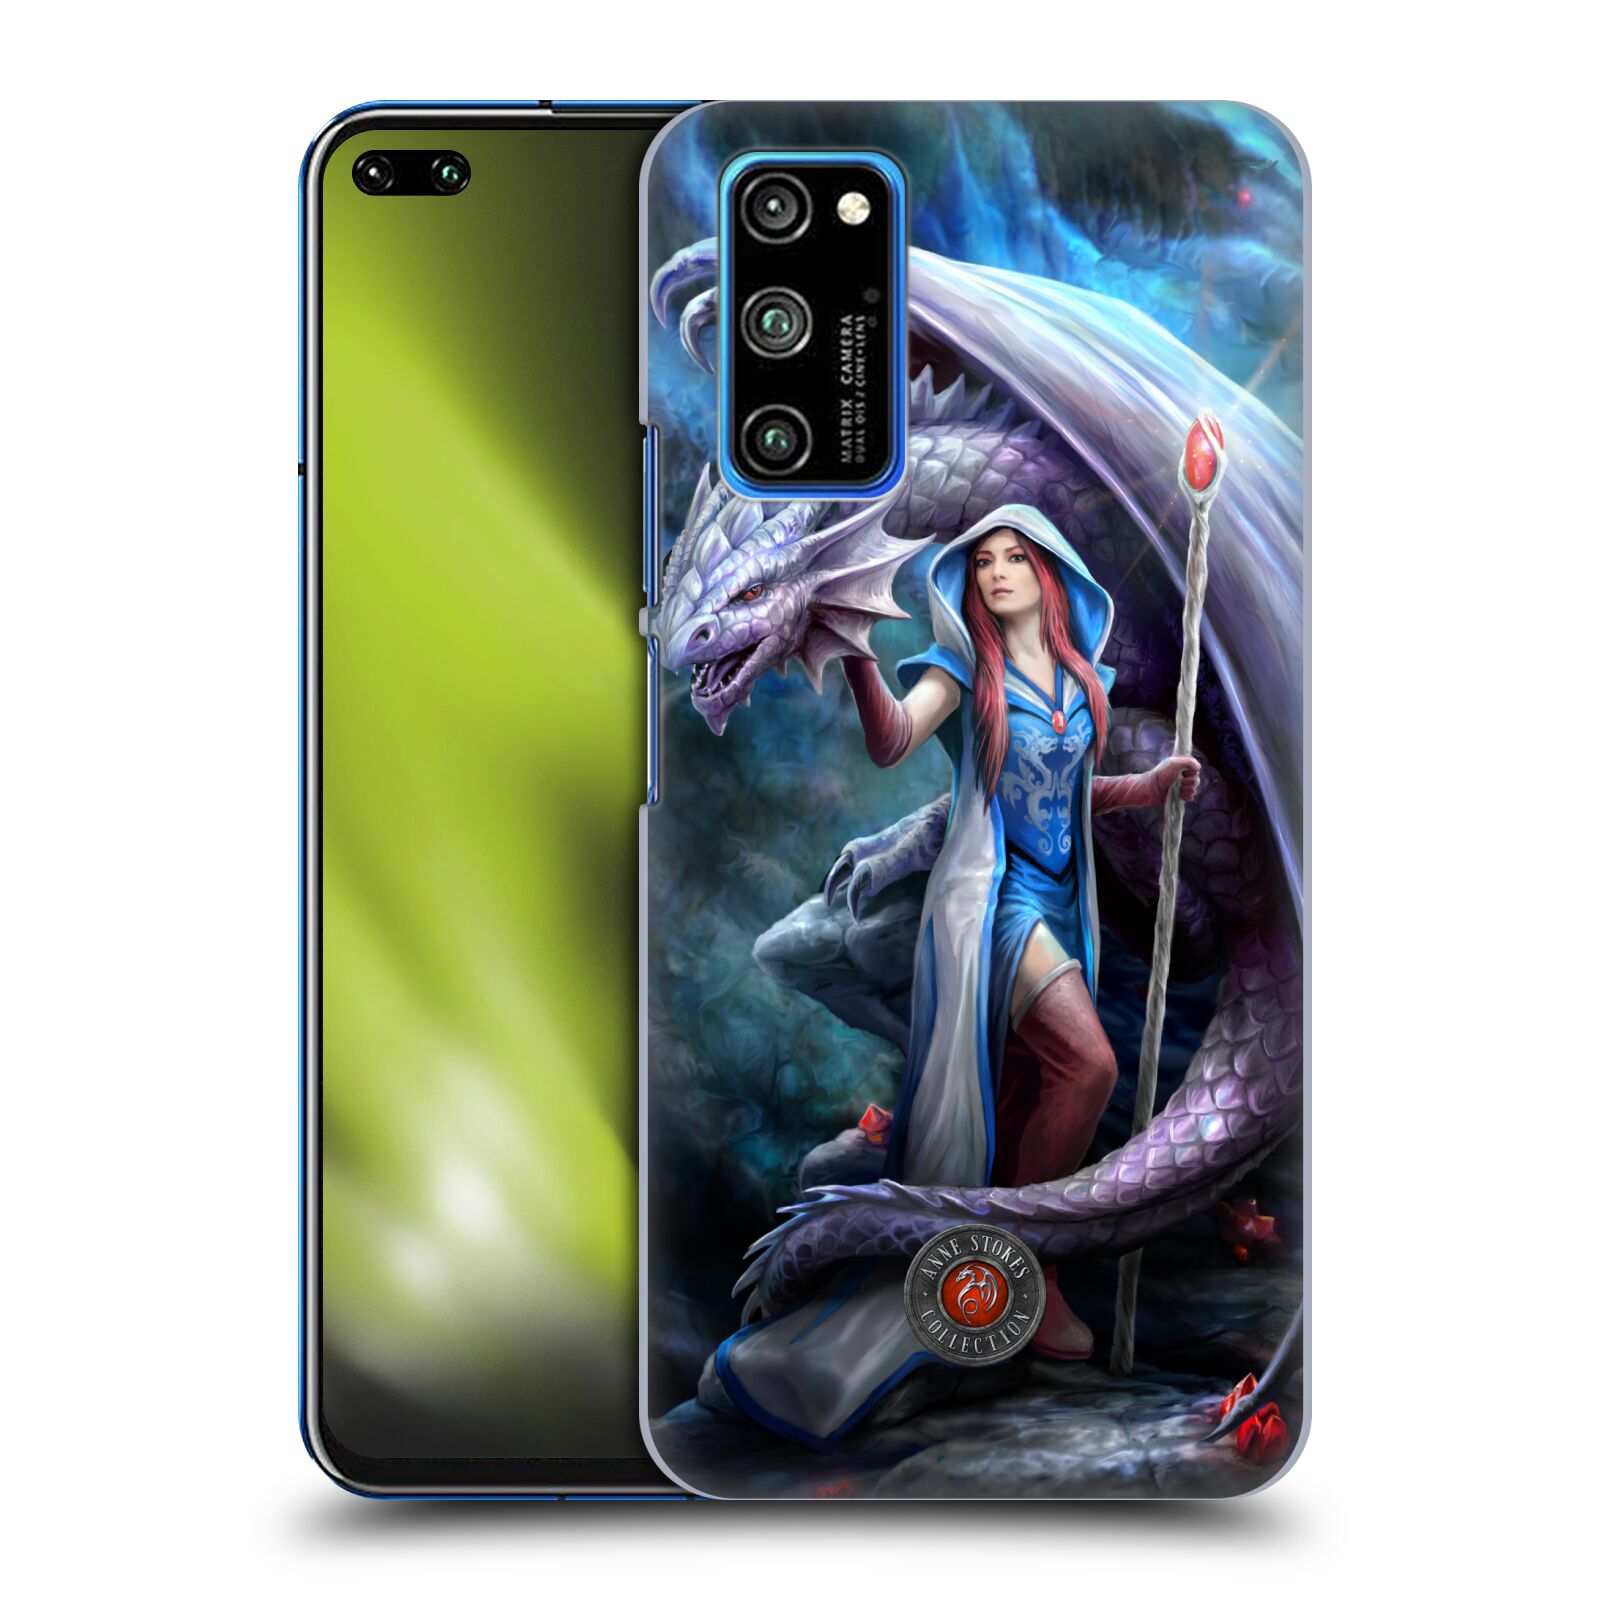 Official Anne Stokes Dragon Friendship 2 Mage Back Case for Huawei Honor V30 Pro / View 30 Pro